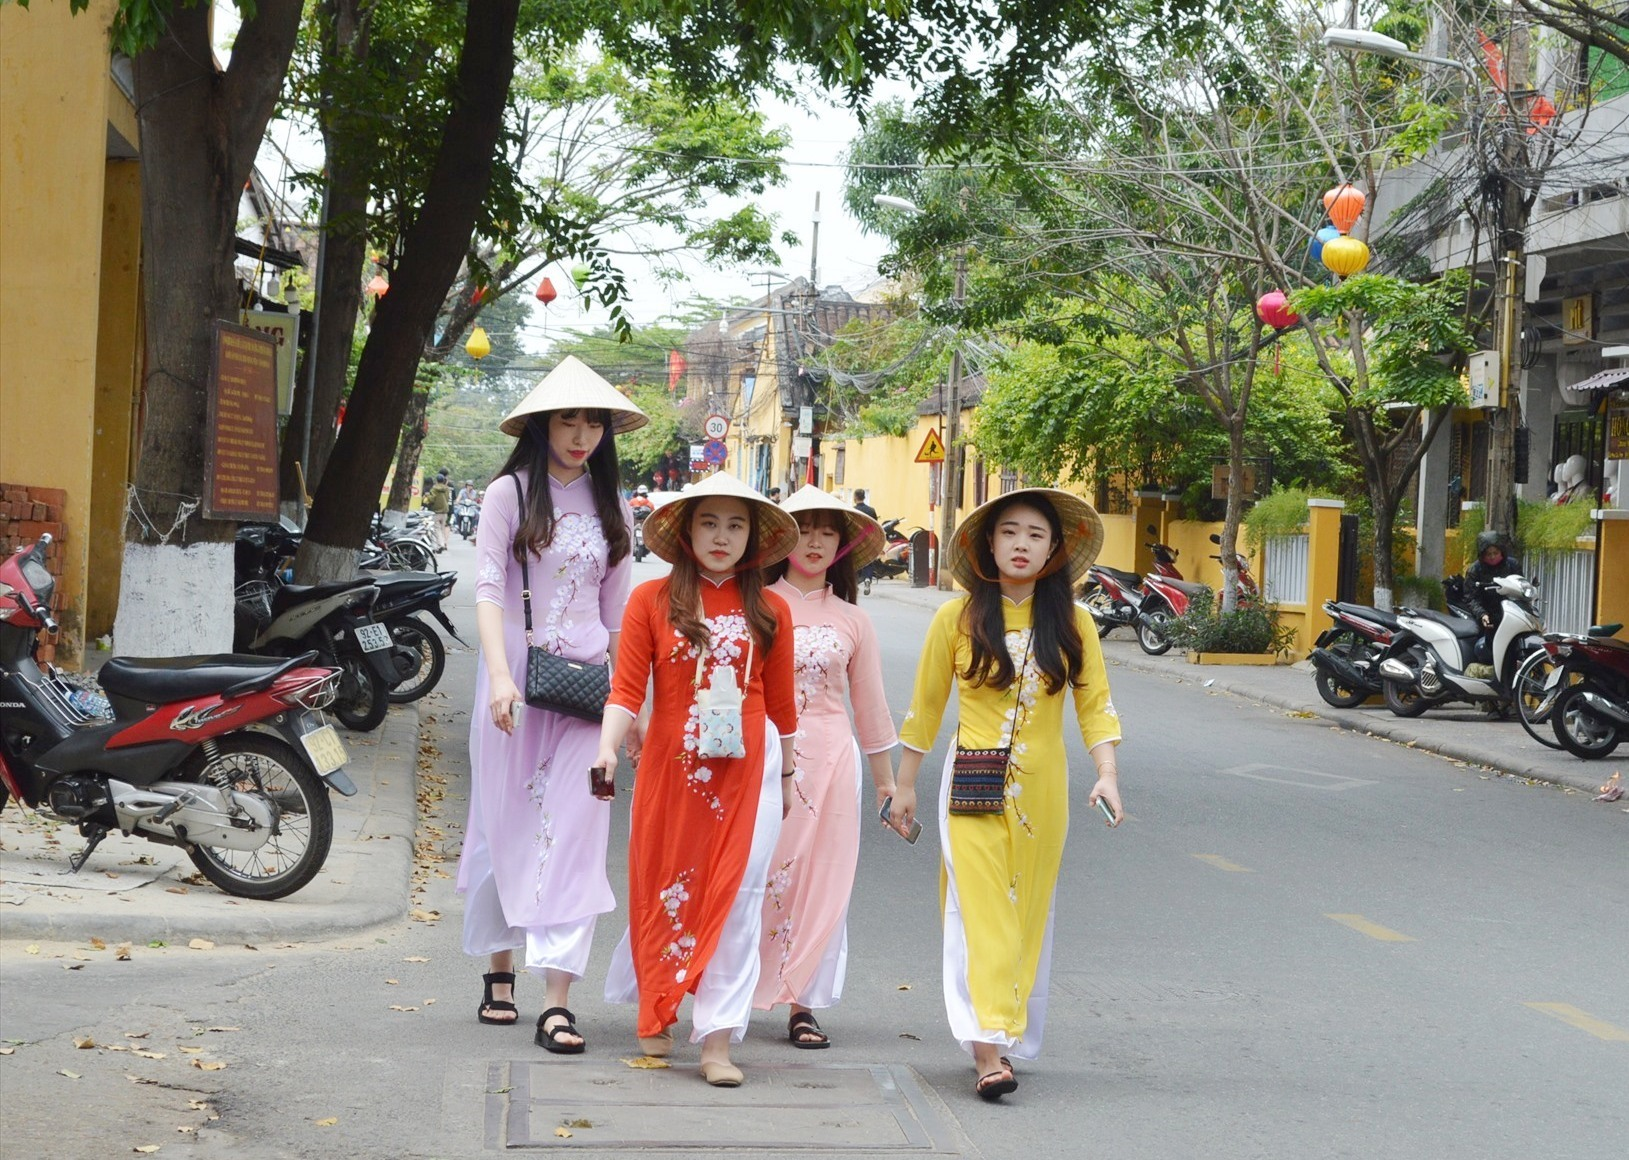 Foreign tourists in Hoi An city, Quang Nam province